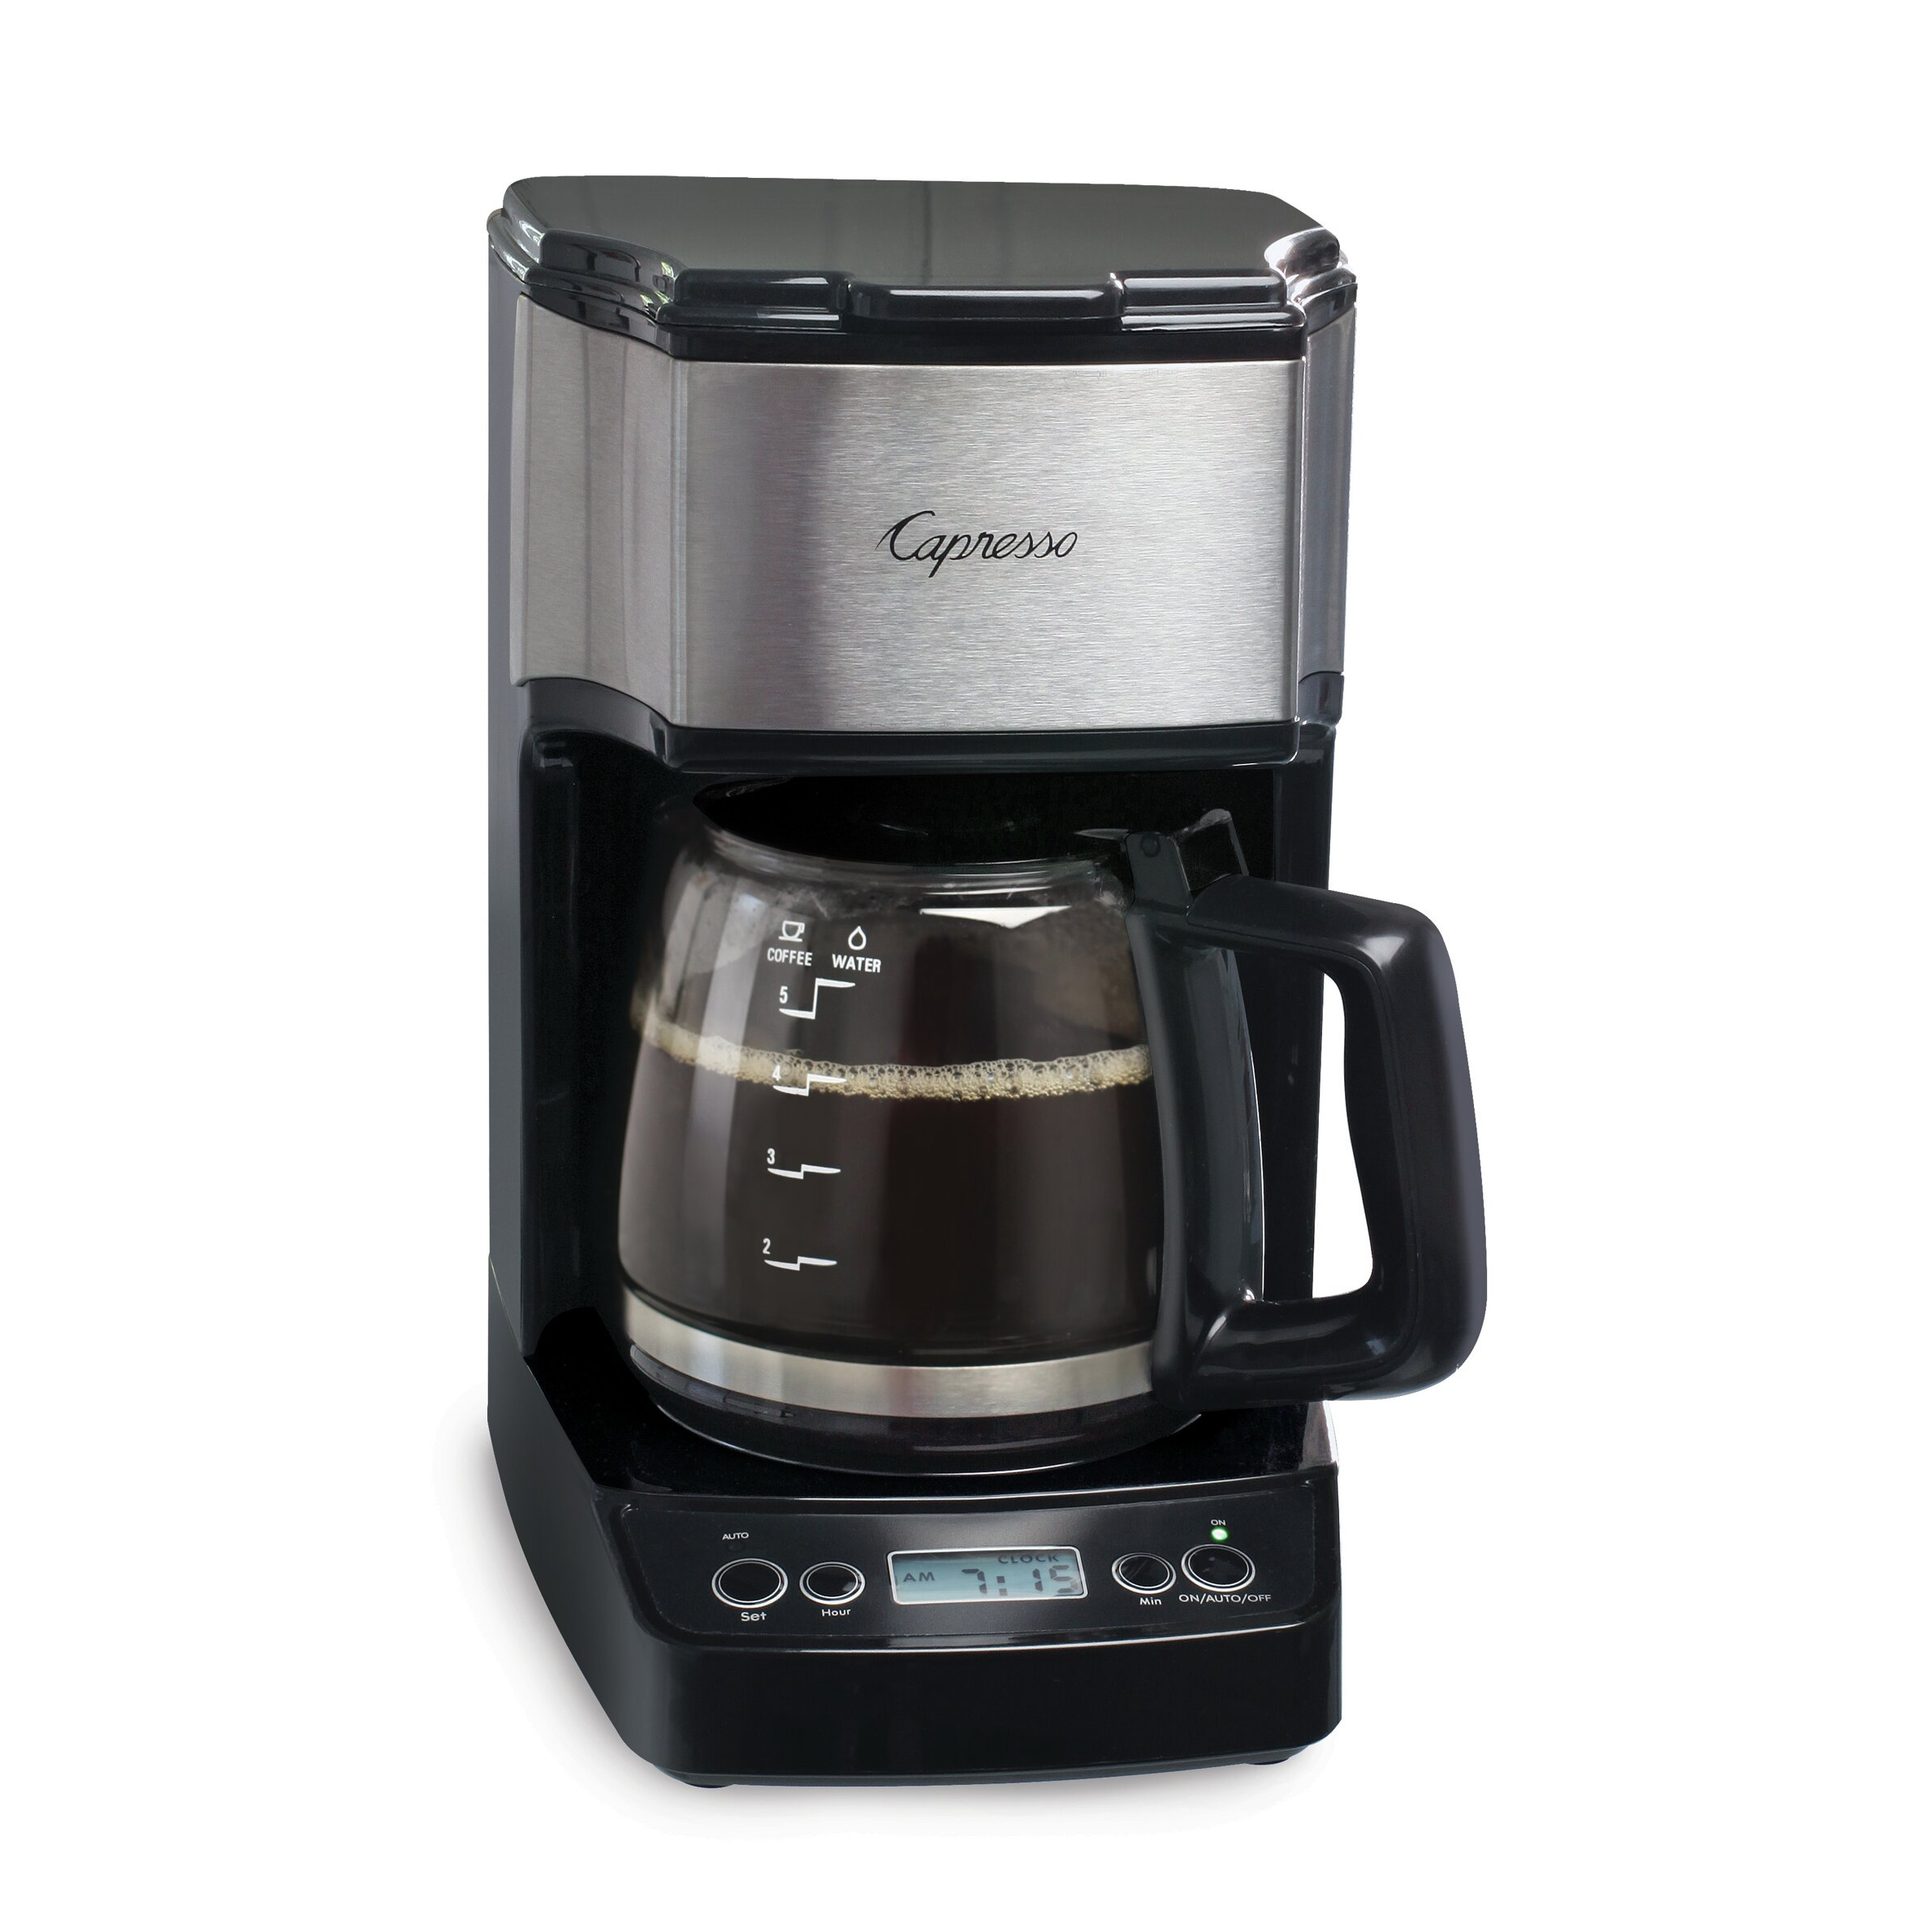 Capresso 5 Cup Mini Drip Coffee Maker Amp Reviews Wayfair